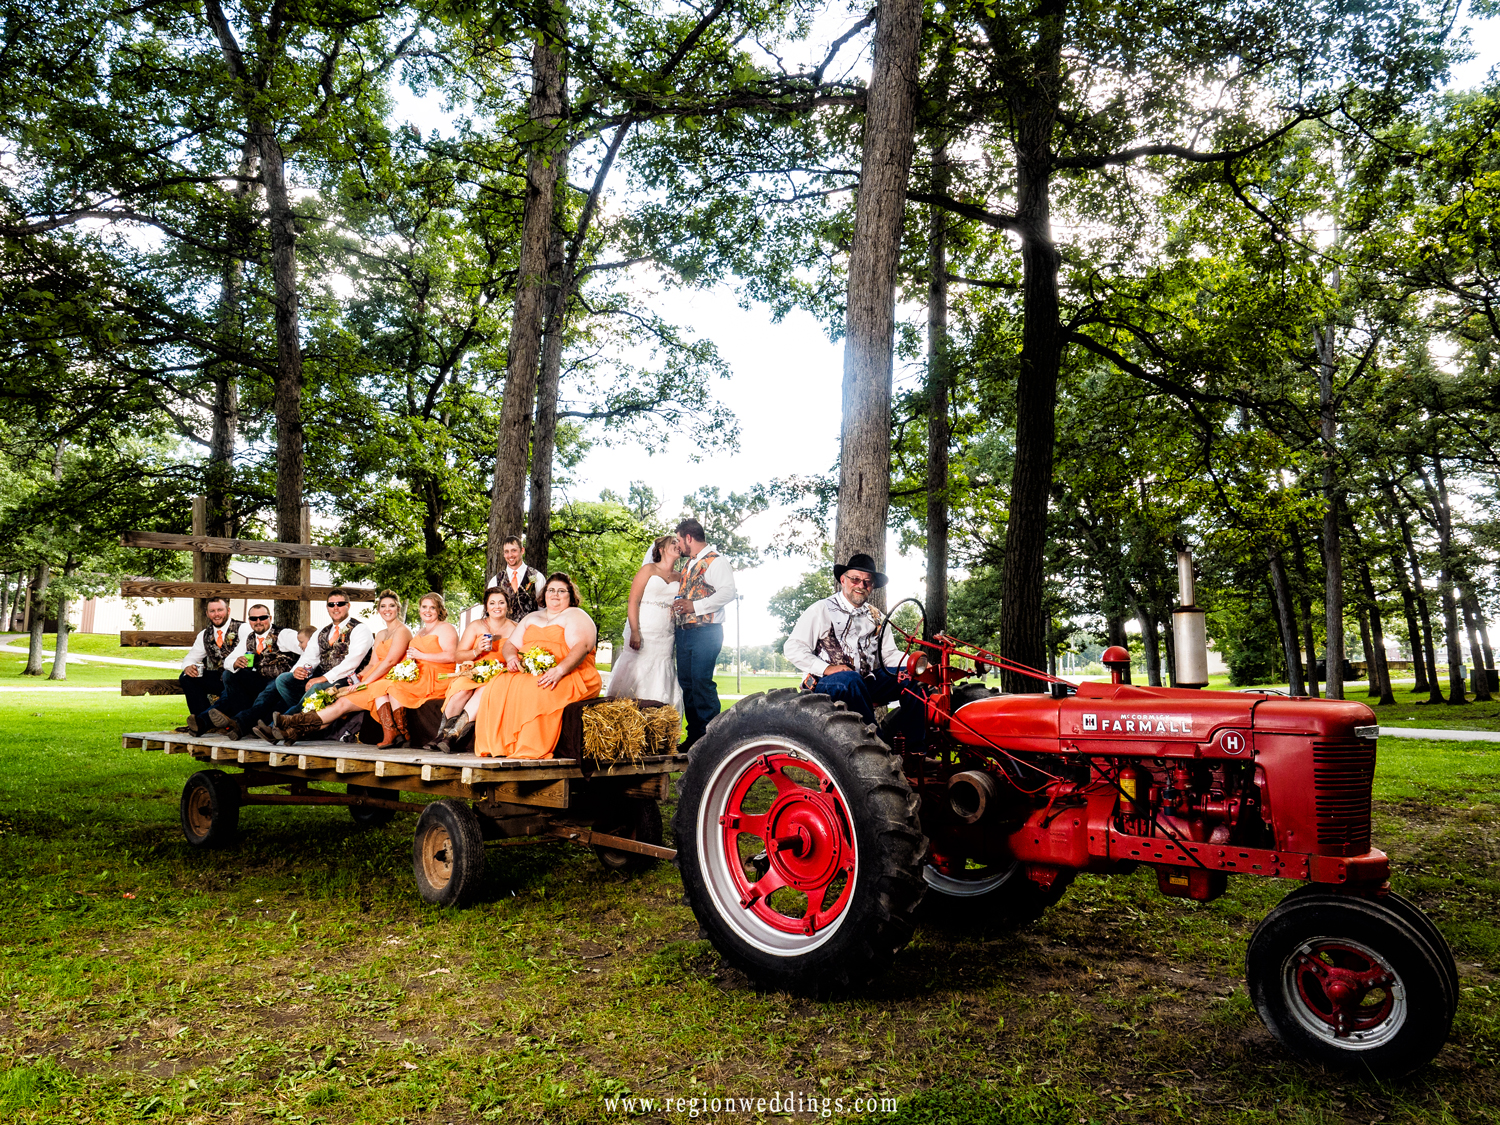 Wedding party hayride at the Lake County Fairgrounds.